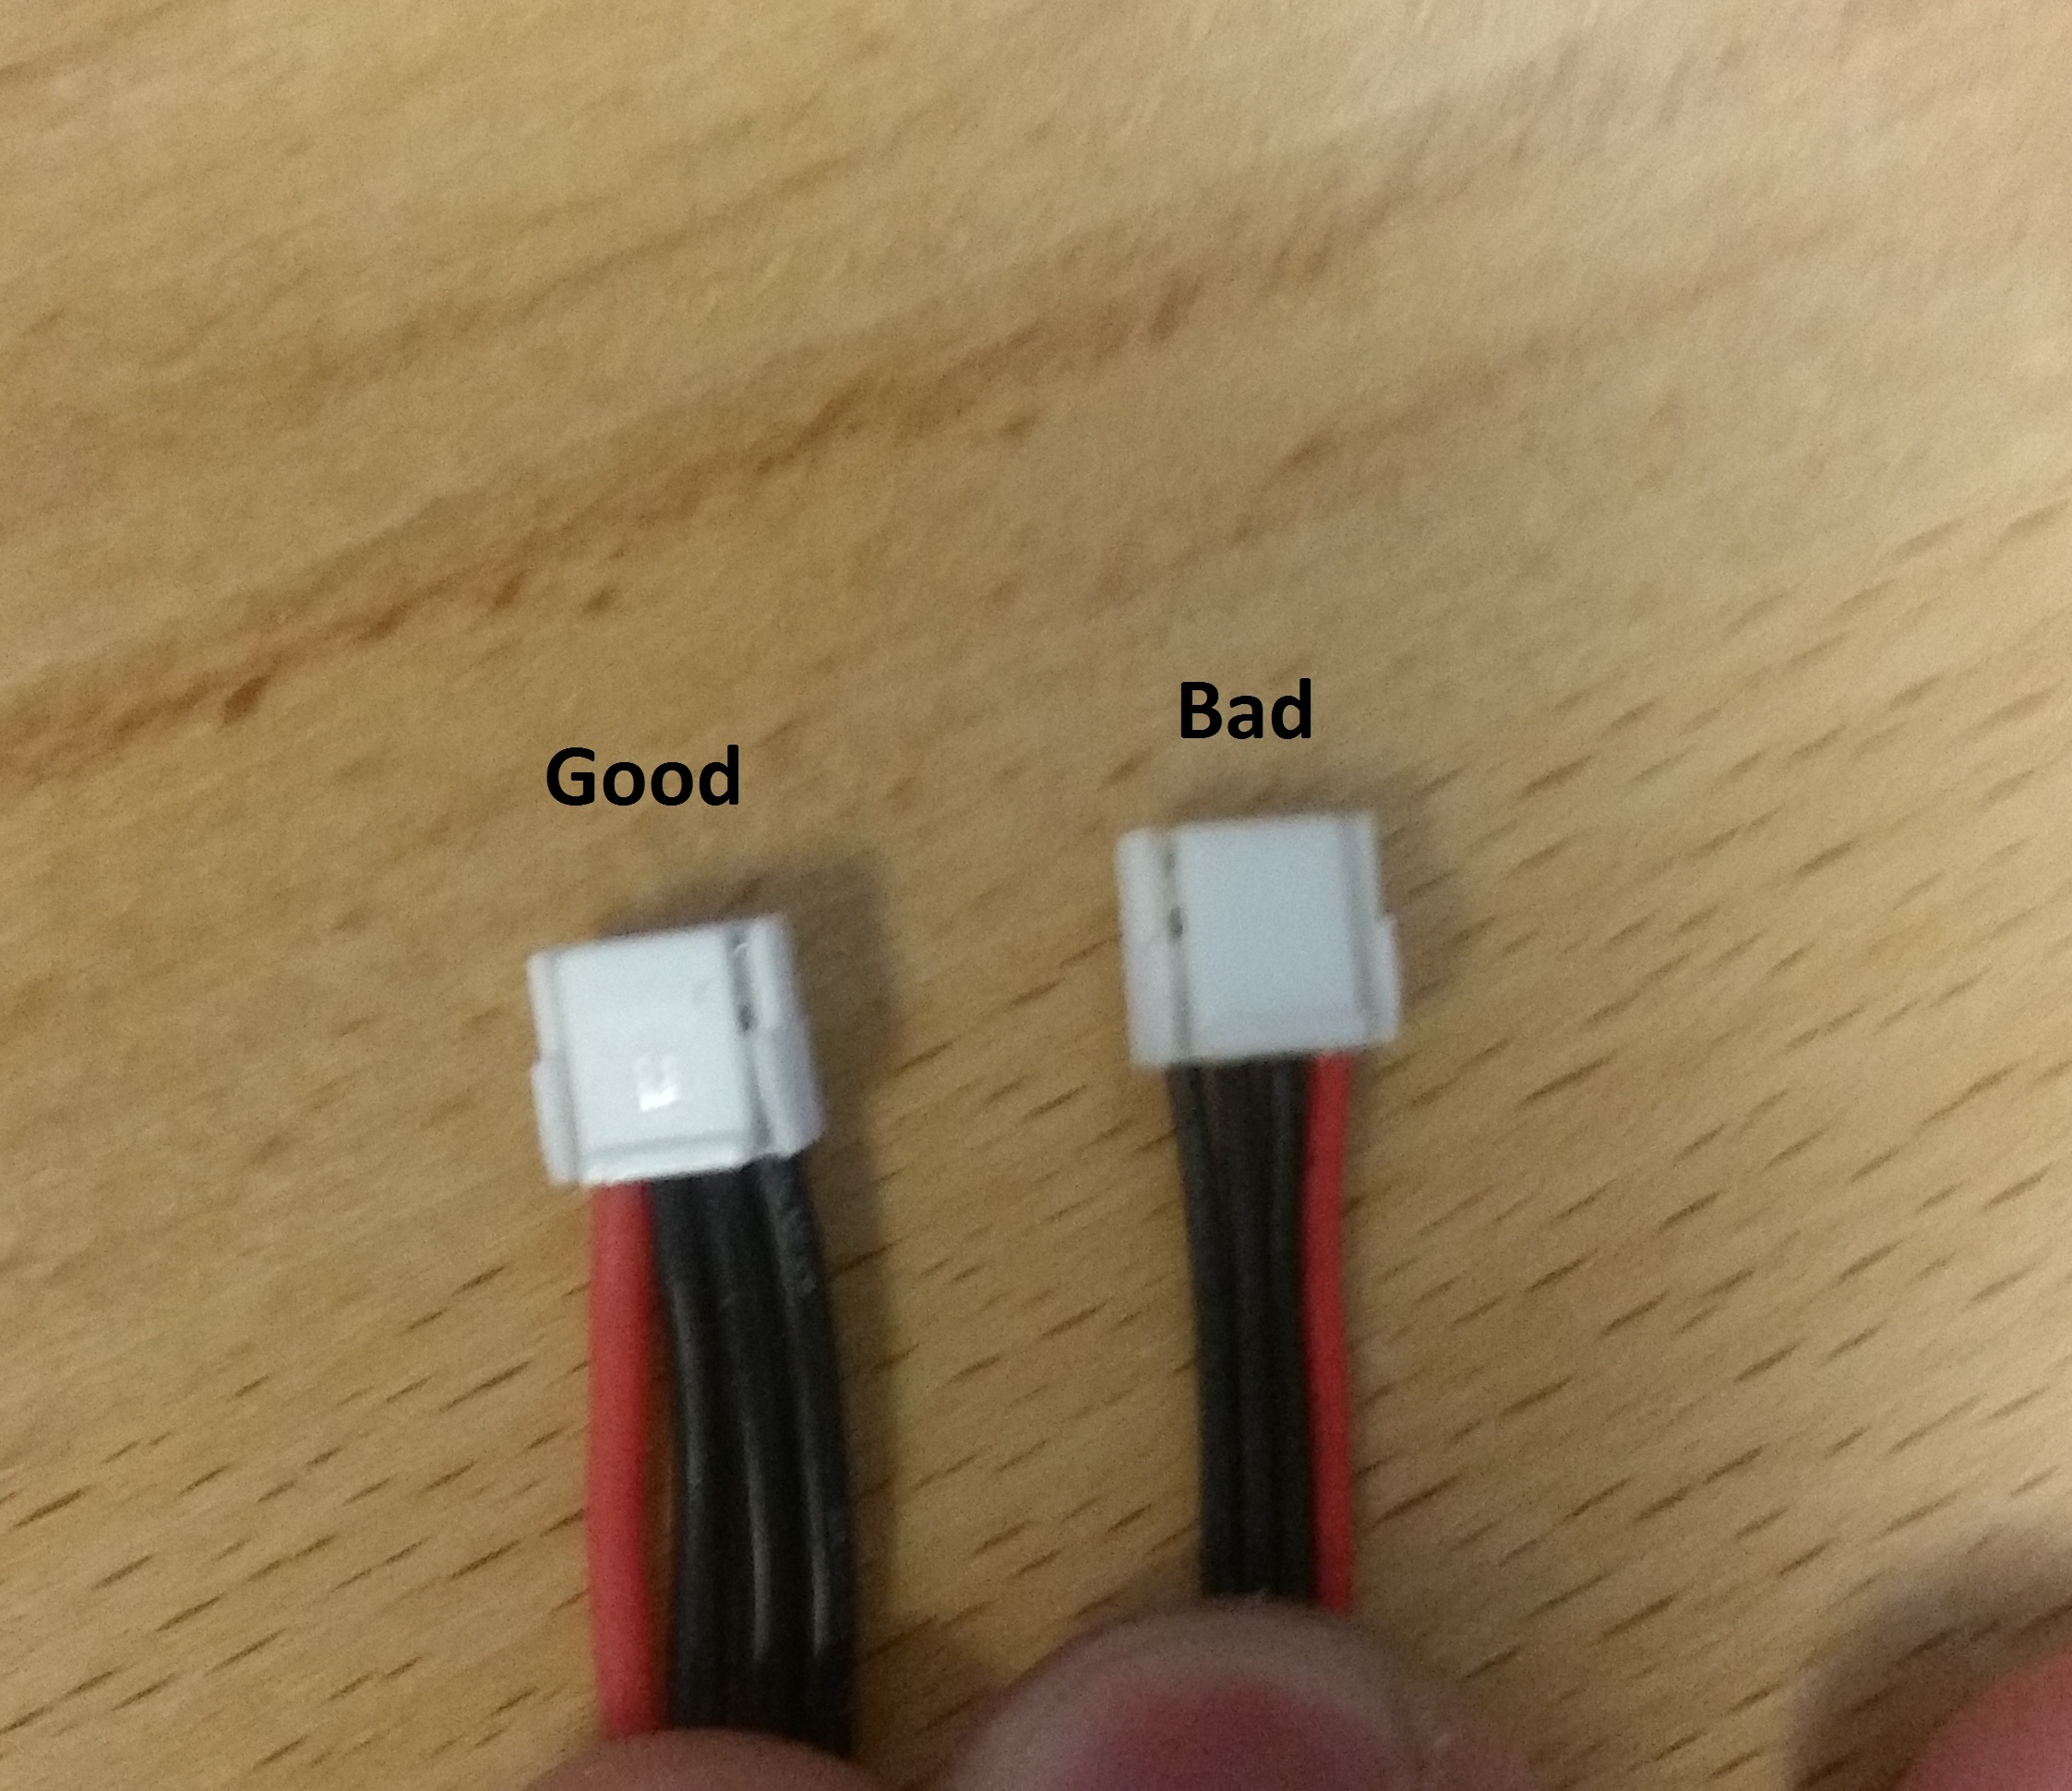 Serious JST-GH wire problem - Flight Controllers - PX4 Discussion